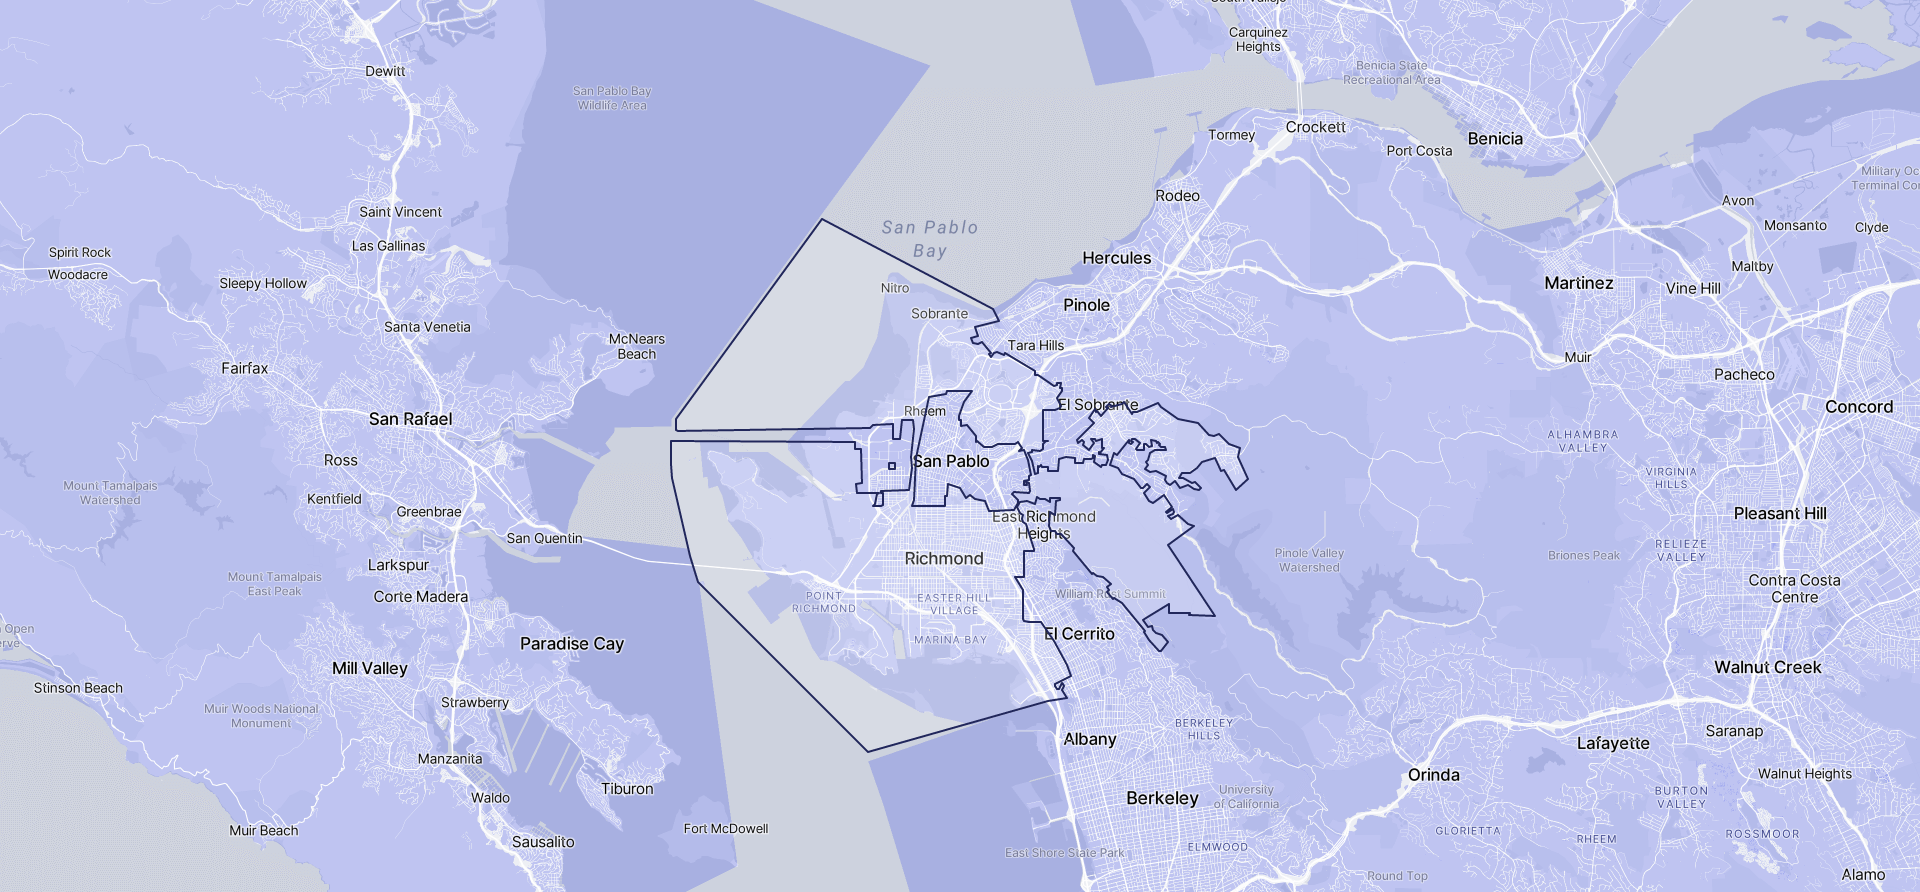 Image of Richmond boundaries on a map.